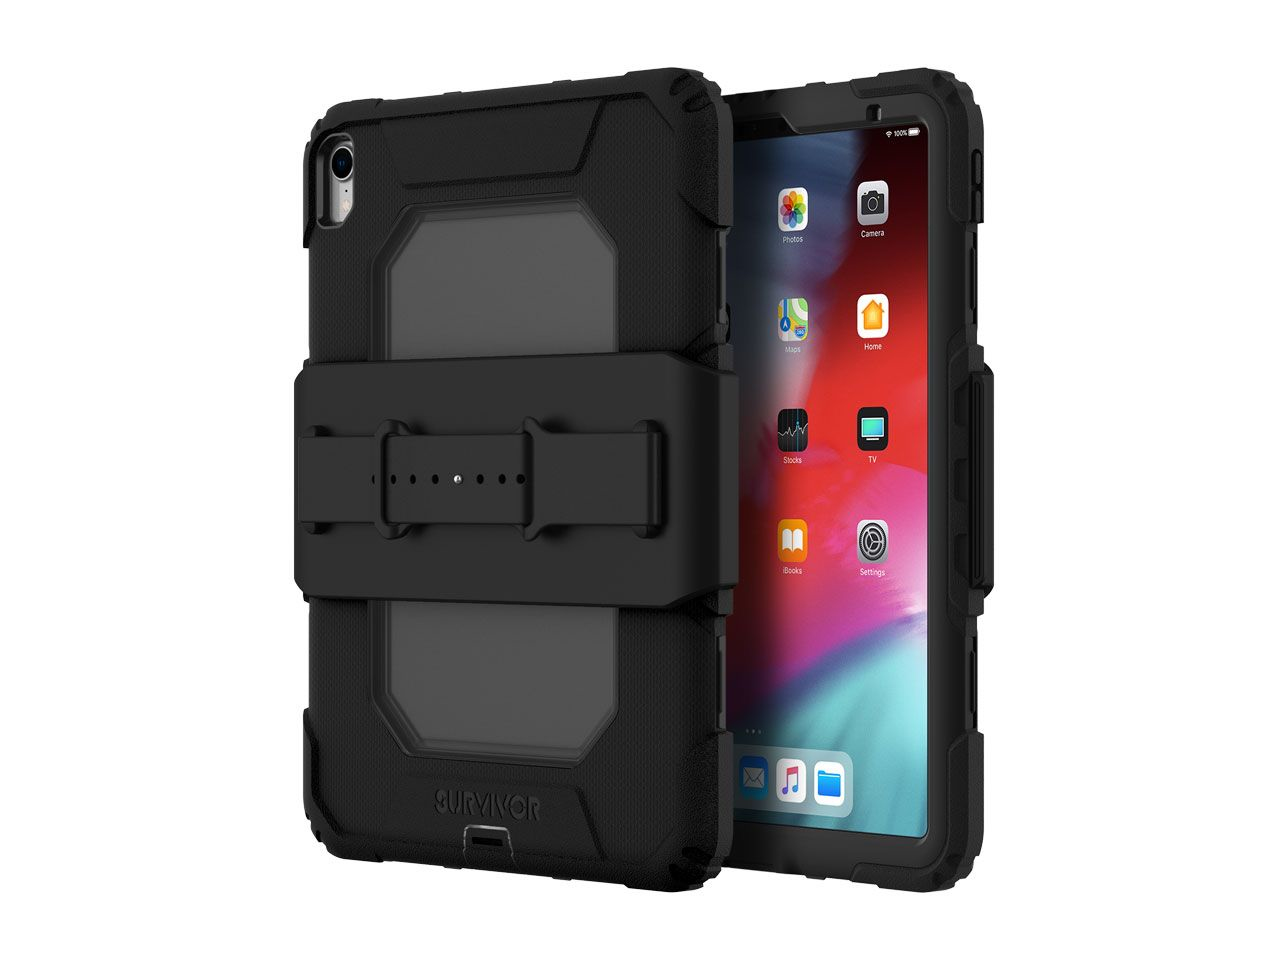 Griffin Survivor All-Terrain - Protective Case For Tablet - Rugged - Black - For Apple 11-inch IPad Pro (1st Generation) GIPD-002-BLK - C2000